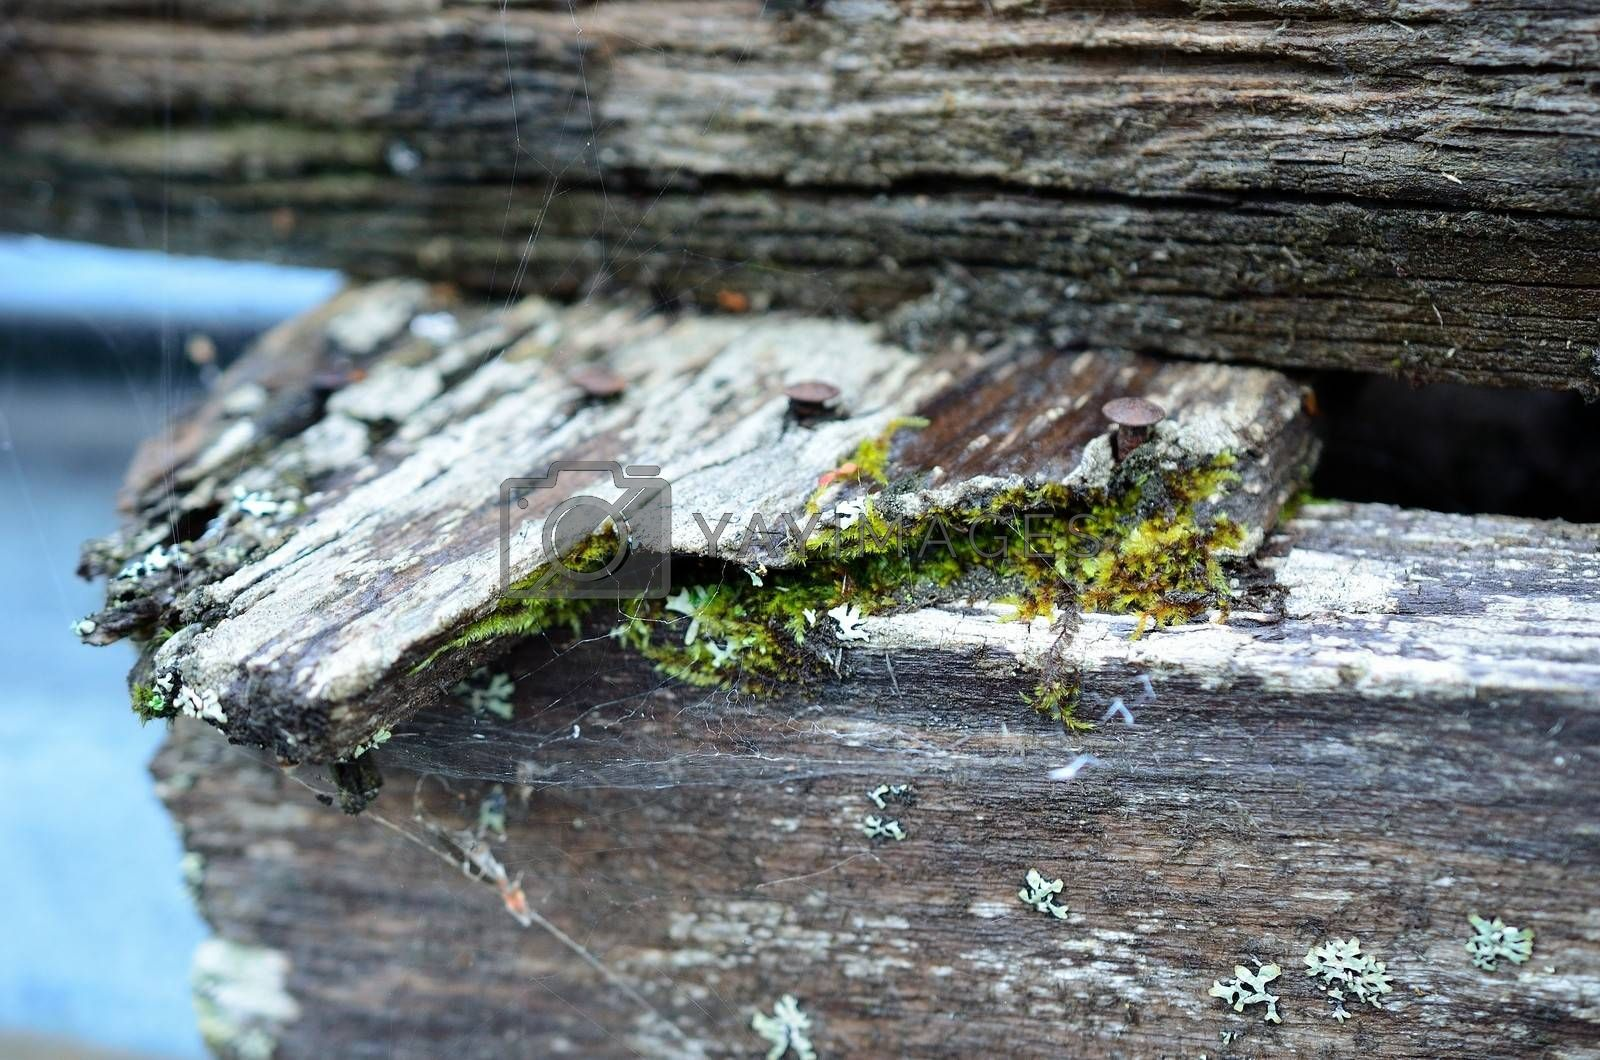 Royalty free image of Old rotten log with green moss on it by Finephotoworks